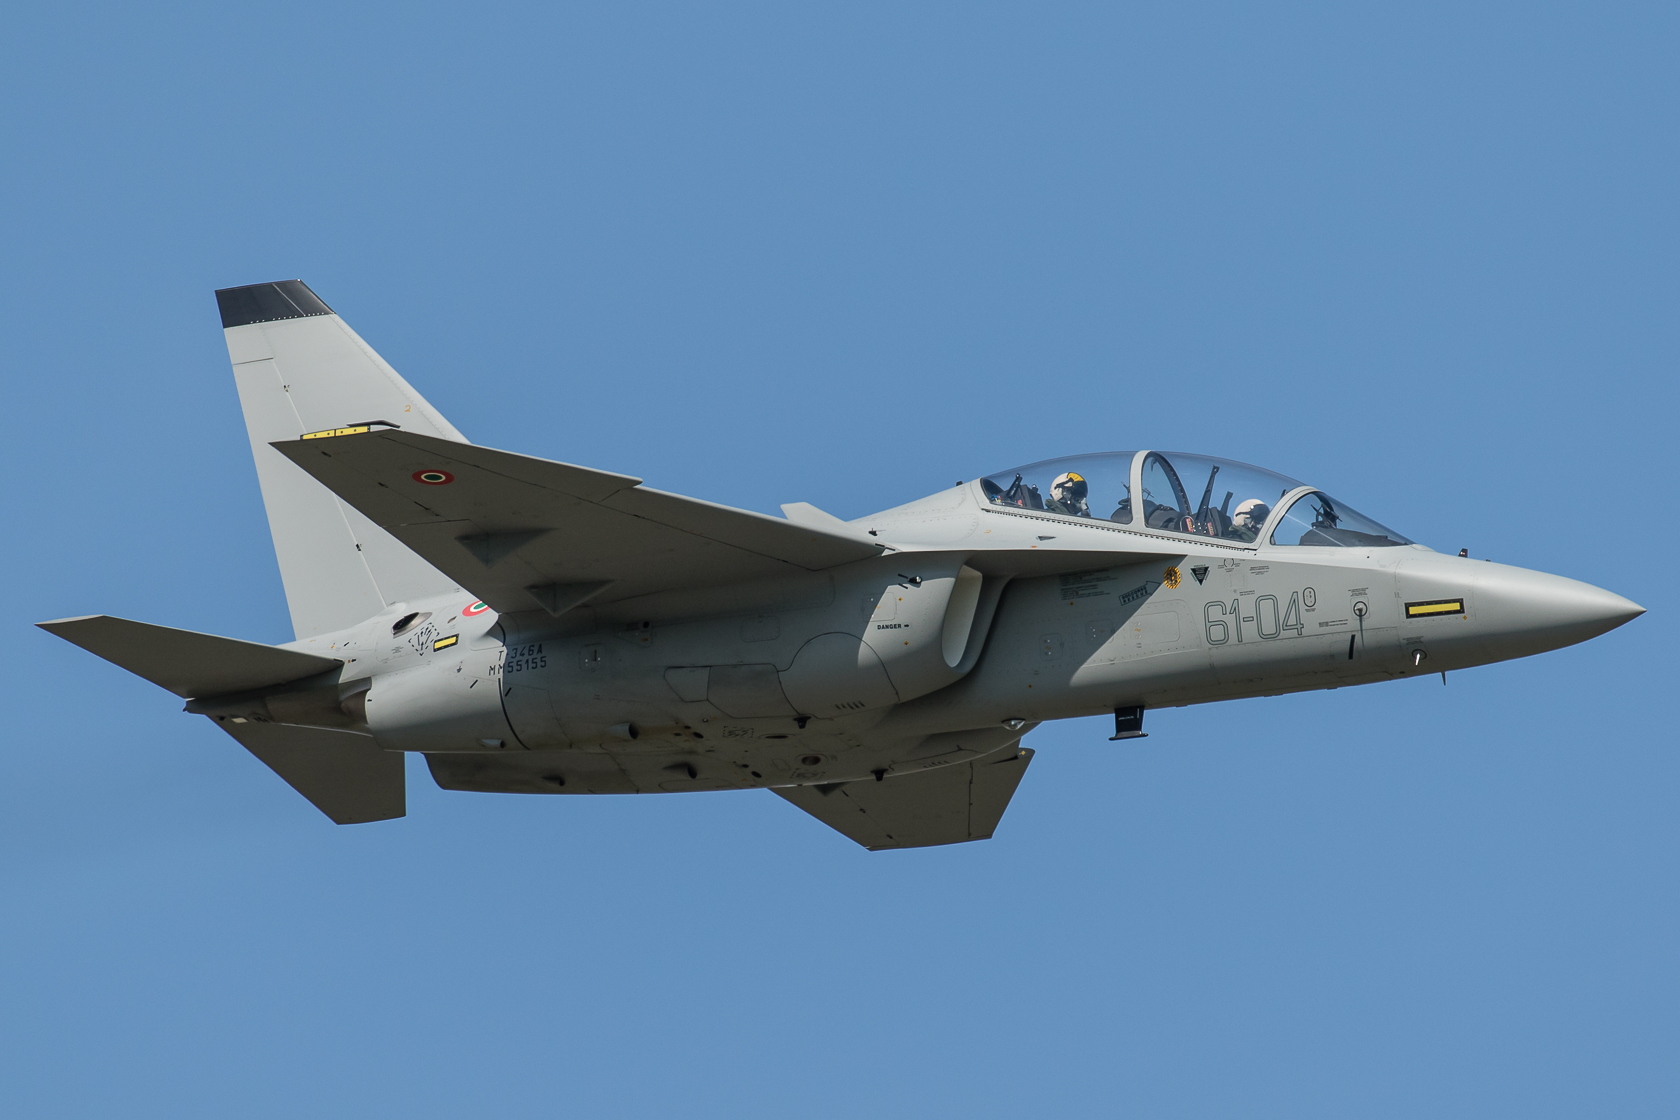 An M-346 in flight. General Dynamics was originally slated to offer a trainer based on the M-346, but it later backed out, leaving Raytheon to team with Leonardo-Finmeccanica instead.